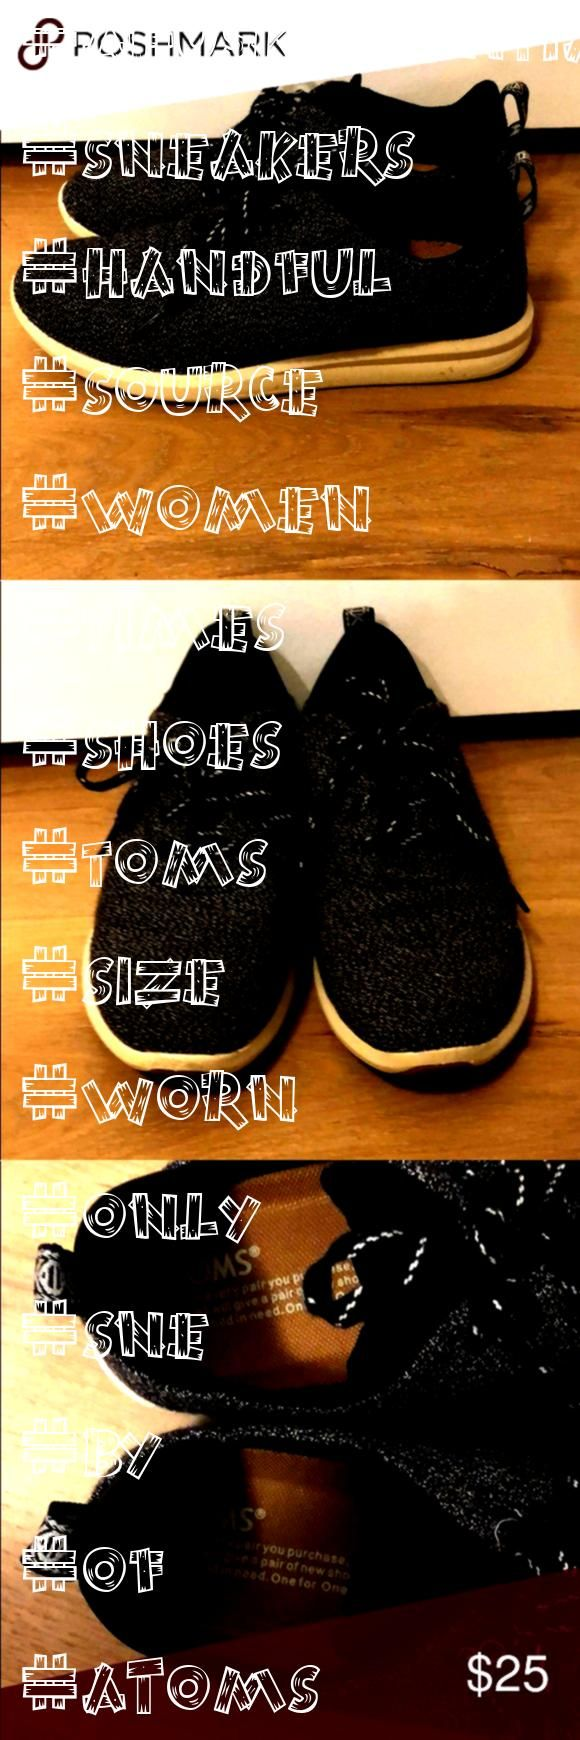 shoes size 6 Toms shoes size 6 Only worn a handful of times Toms Shoes Sneakers Source by ahuskeysantiago Shoes tomsToms shoes size 6 Toms shoes size 6 Only worn a handfu...